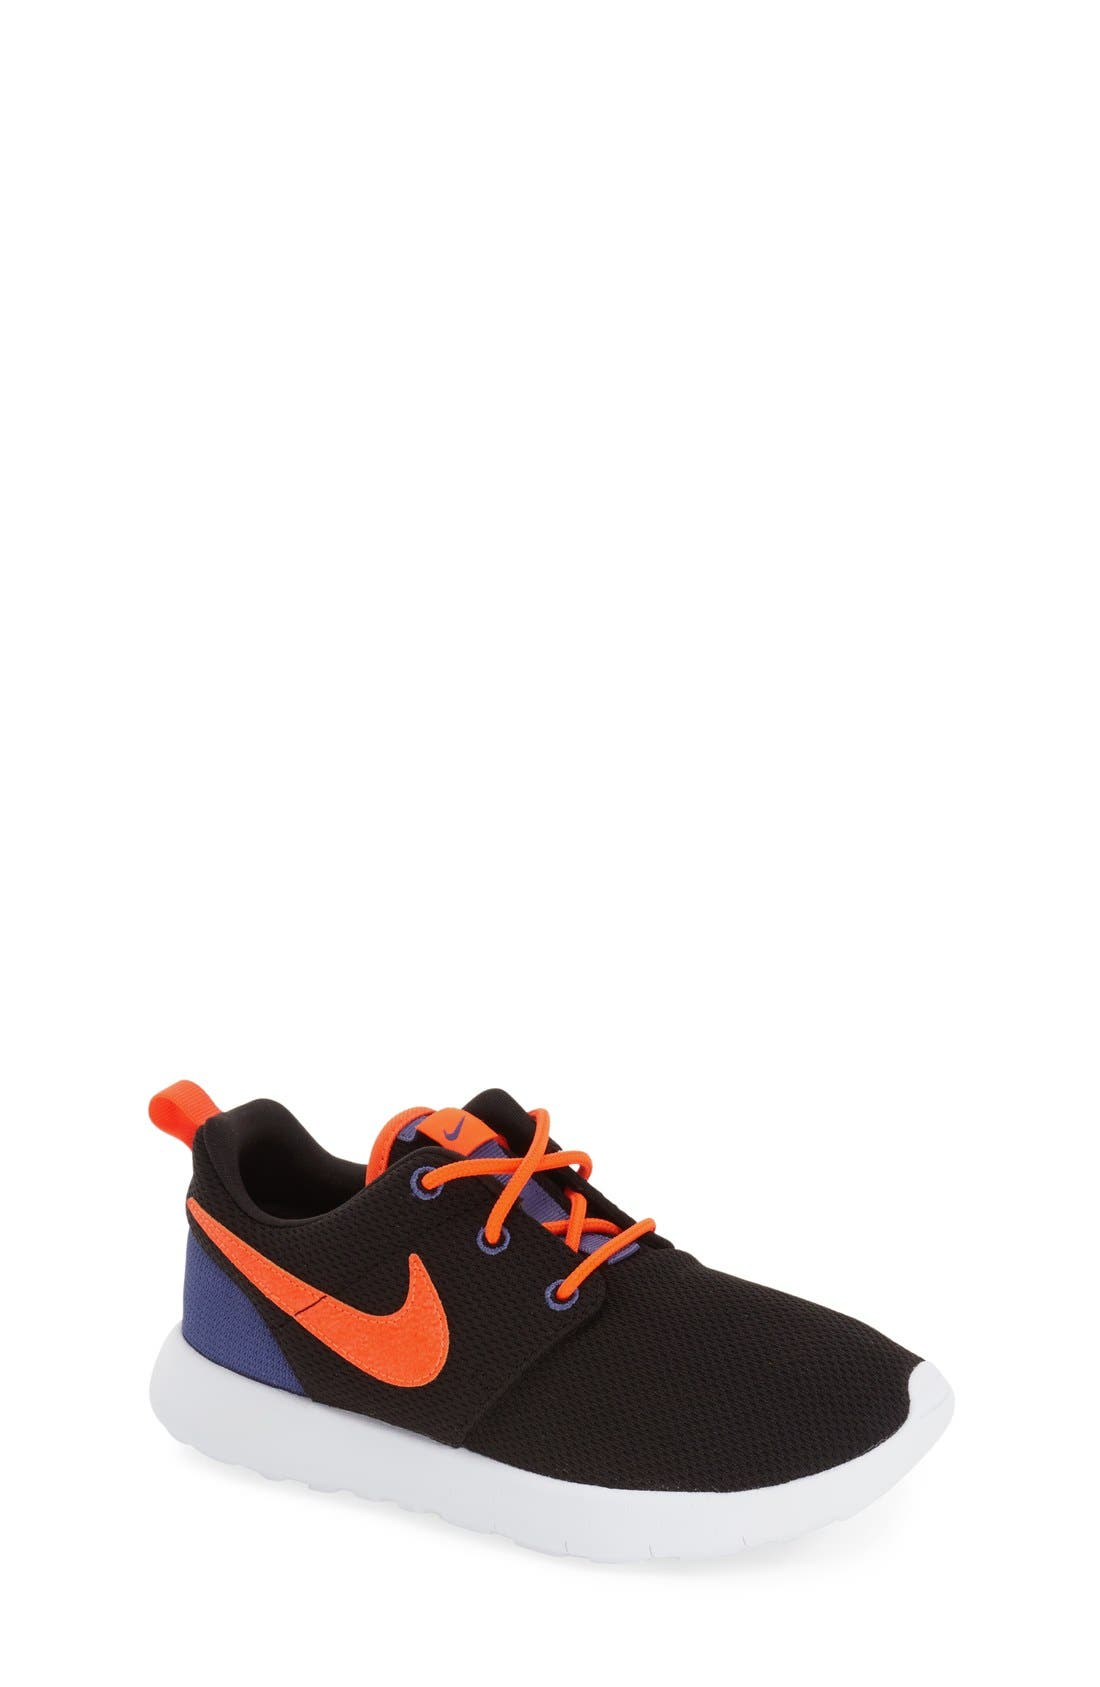 Roshe Run Sneaker,                             Main thumbnail 5, color,